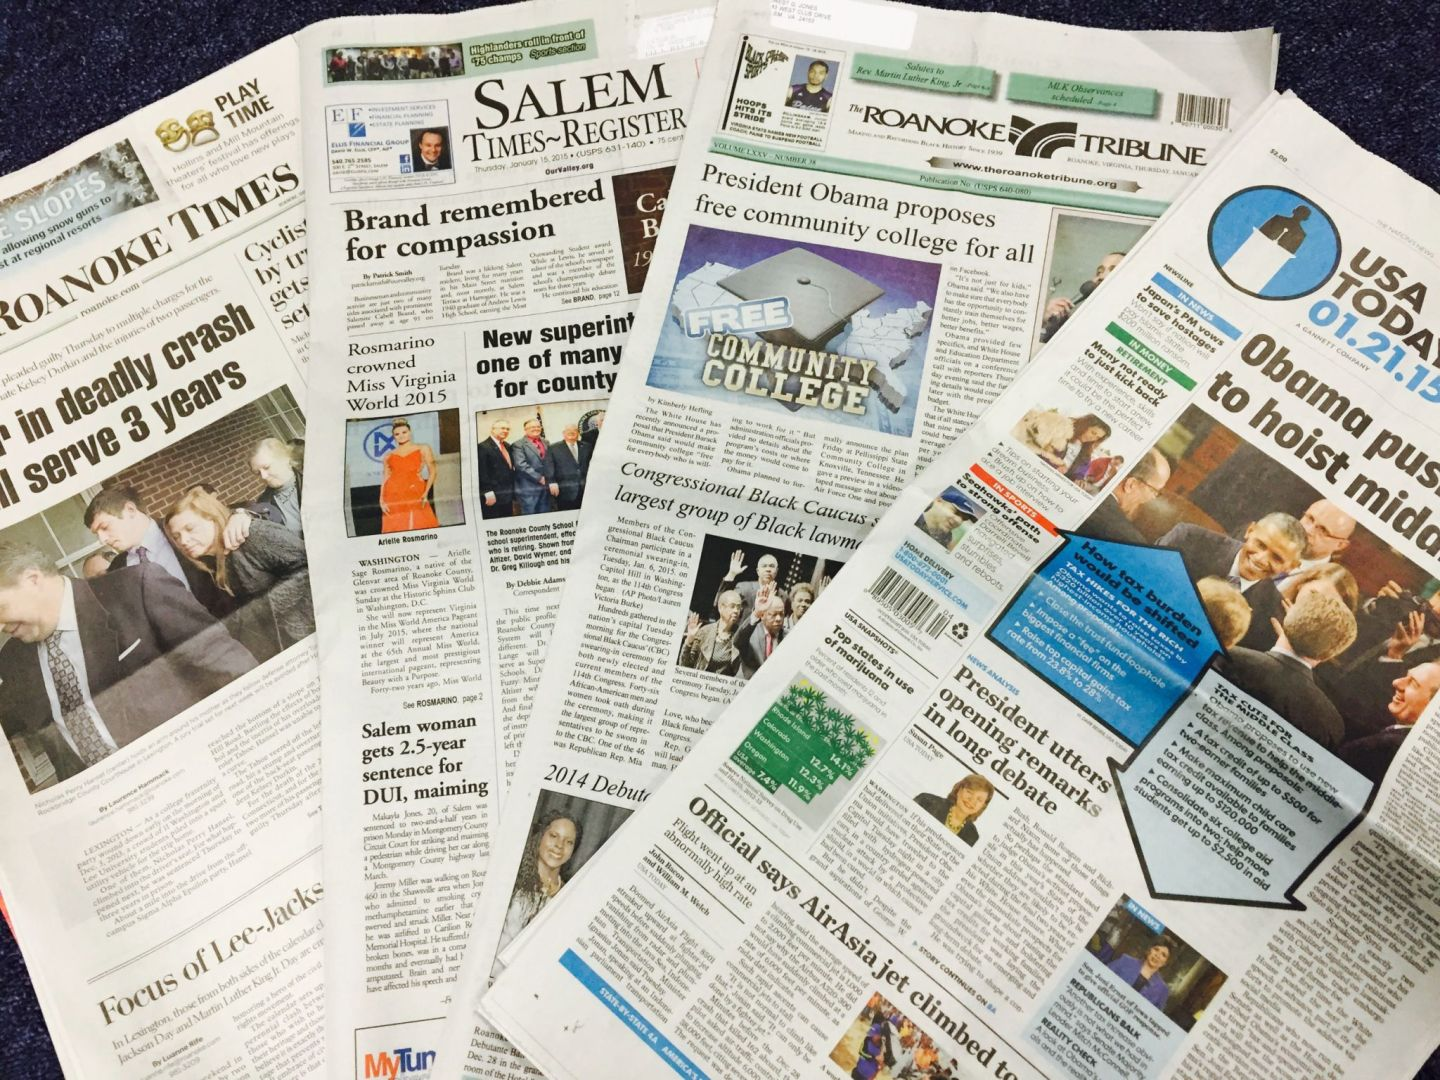 US newspapers including Roanoake Times (daily) Salem Times Register and Roanoke Tribune (weeklies) plus USA Today national daily.